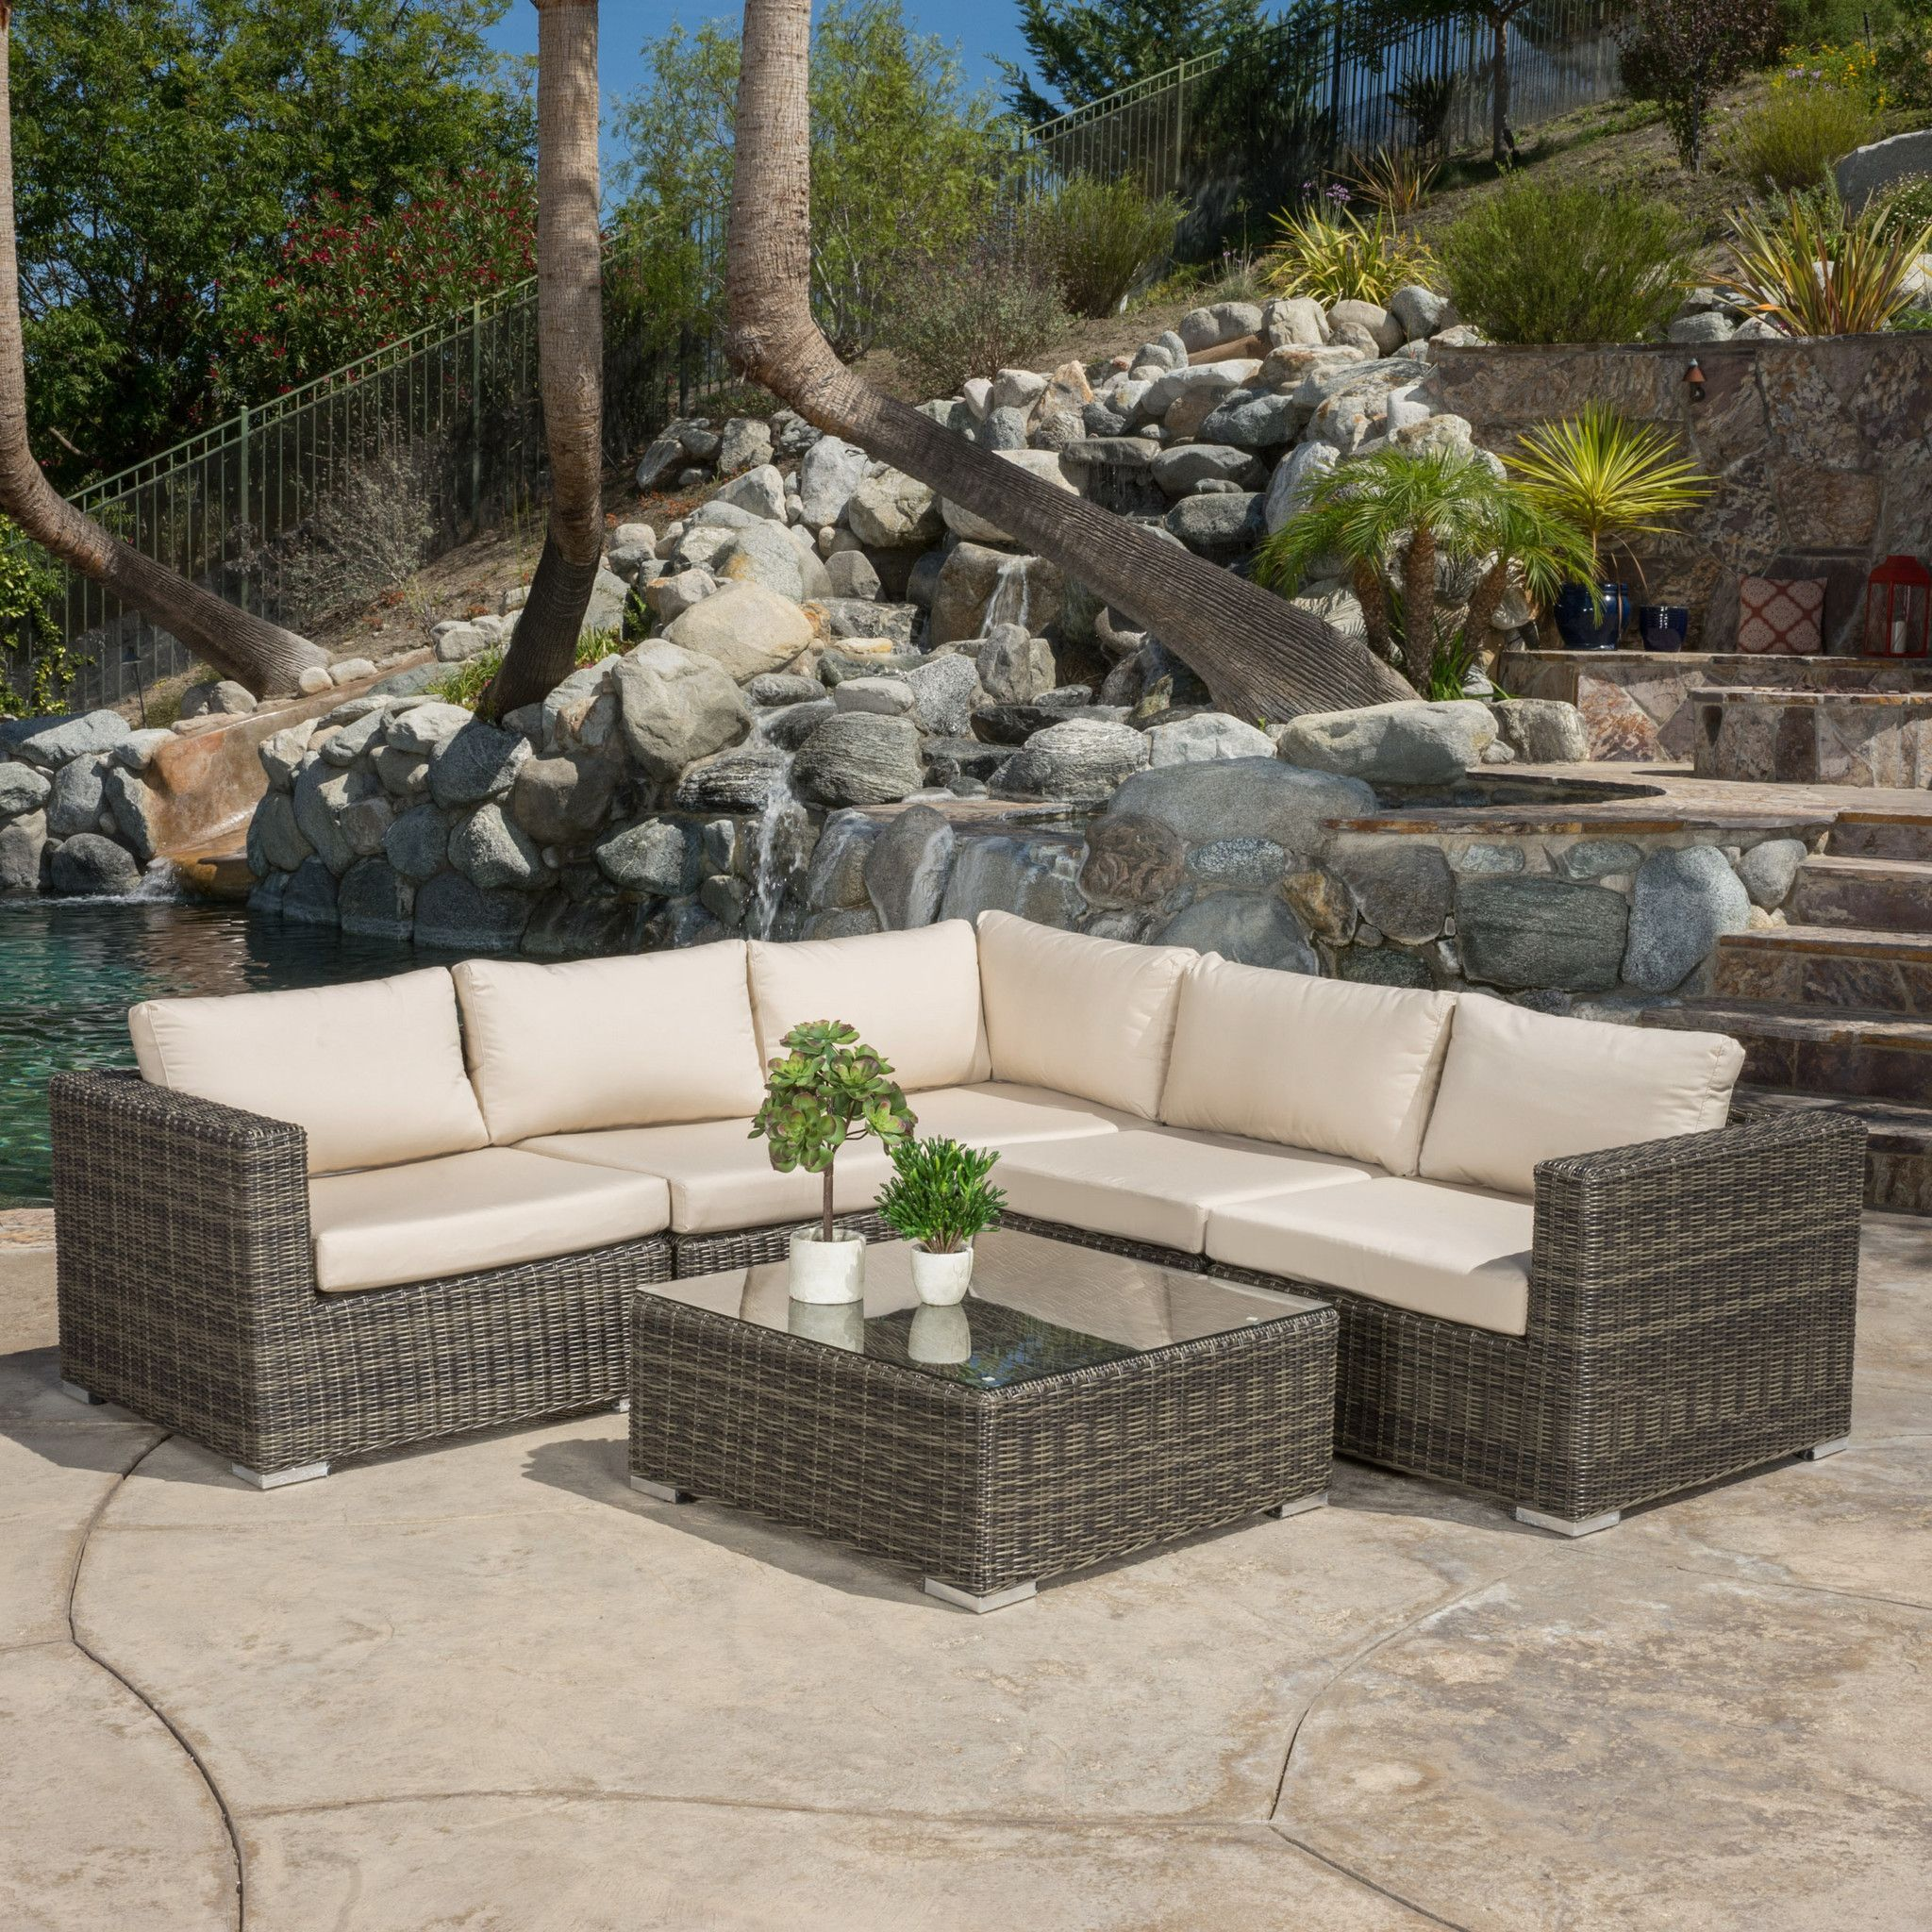 Best Francisco Outdoor 6 Piece Wicker Seating Sectional Set 640 x 480